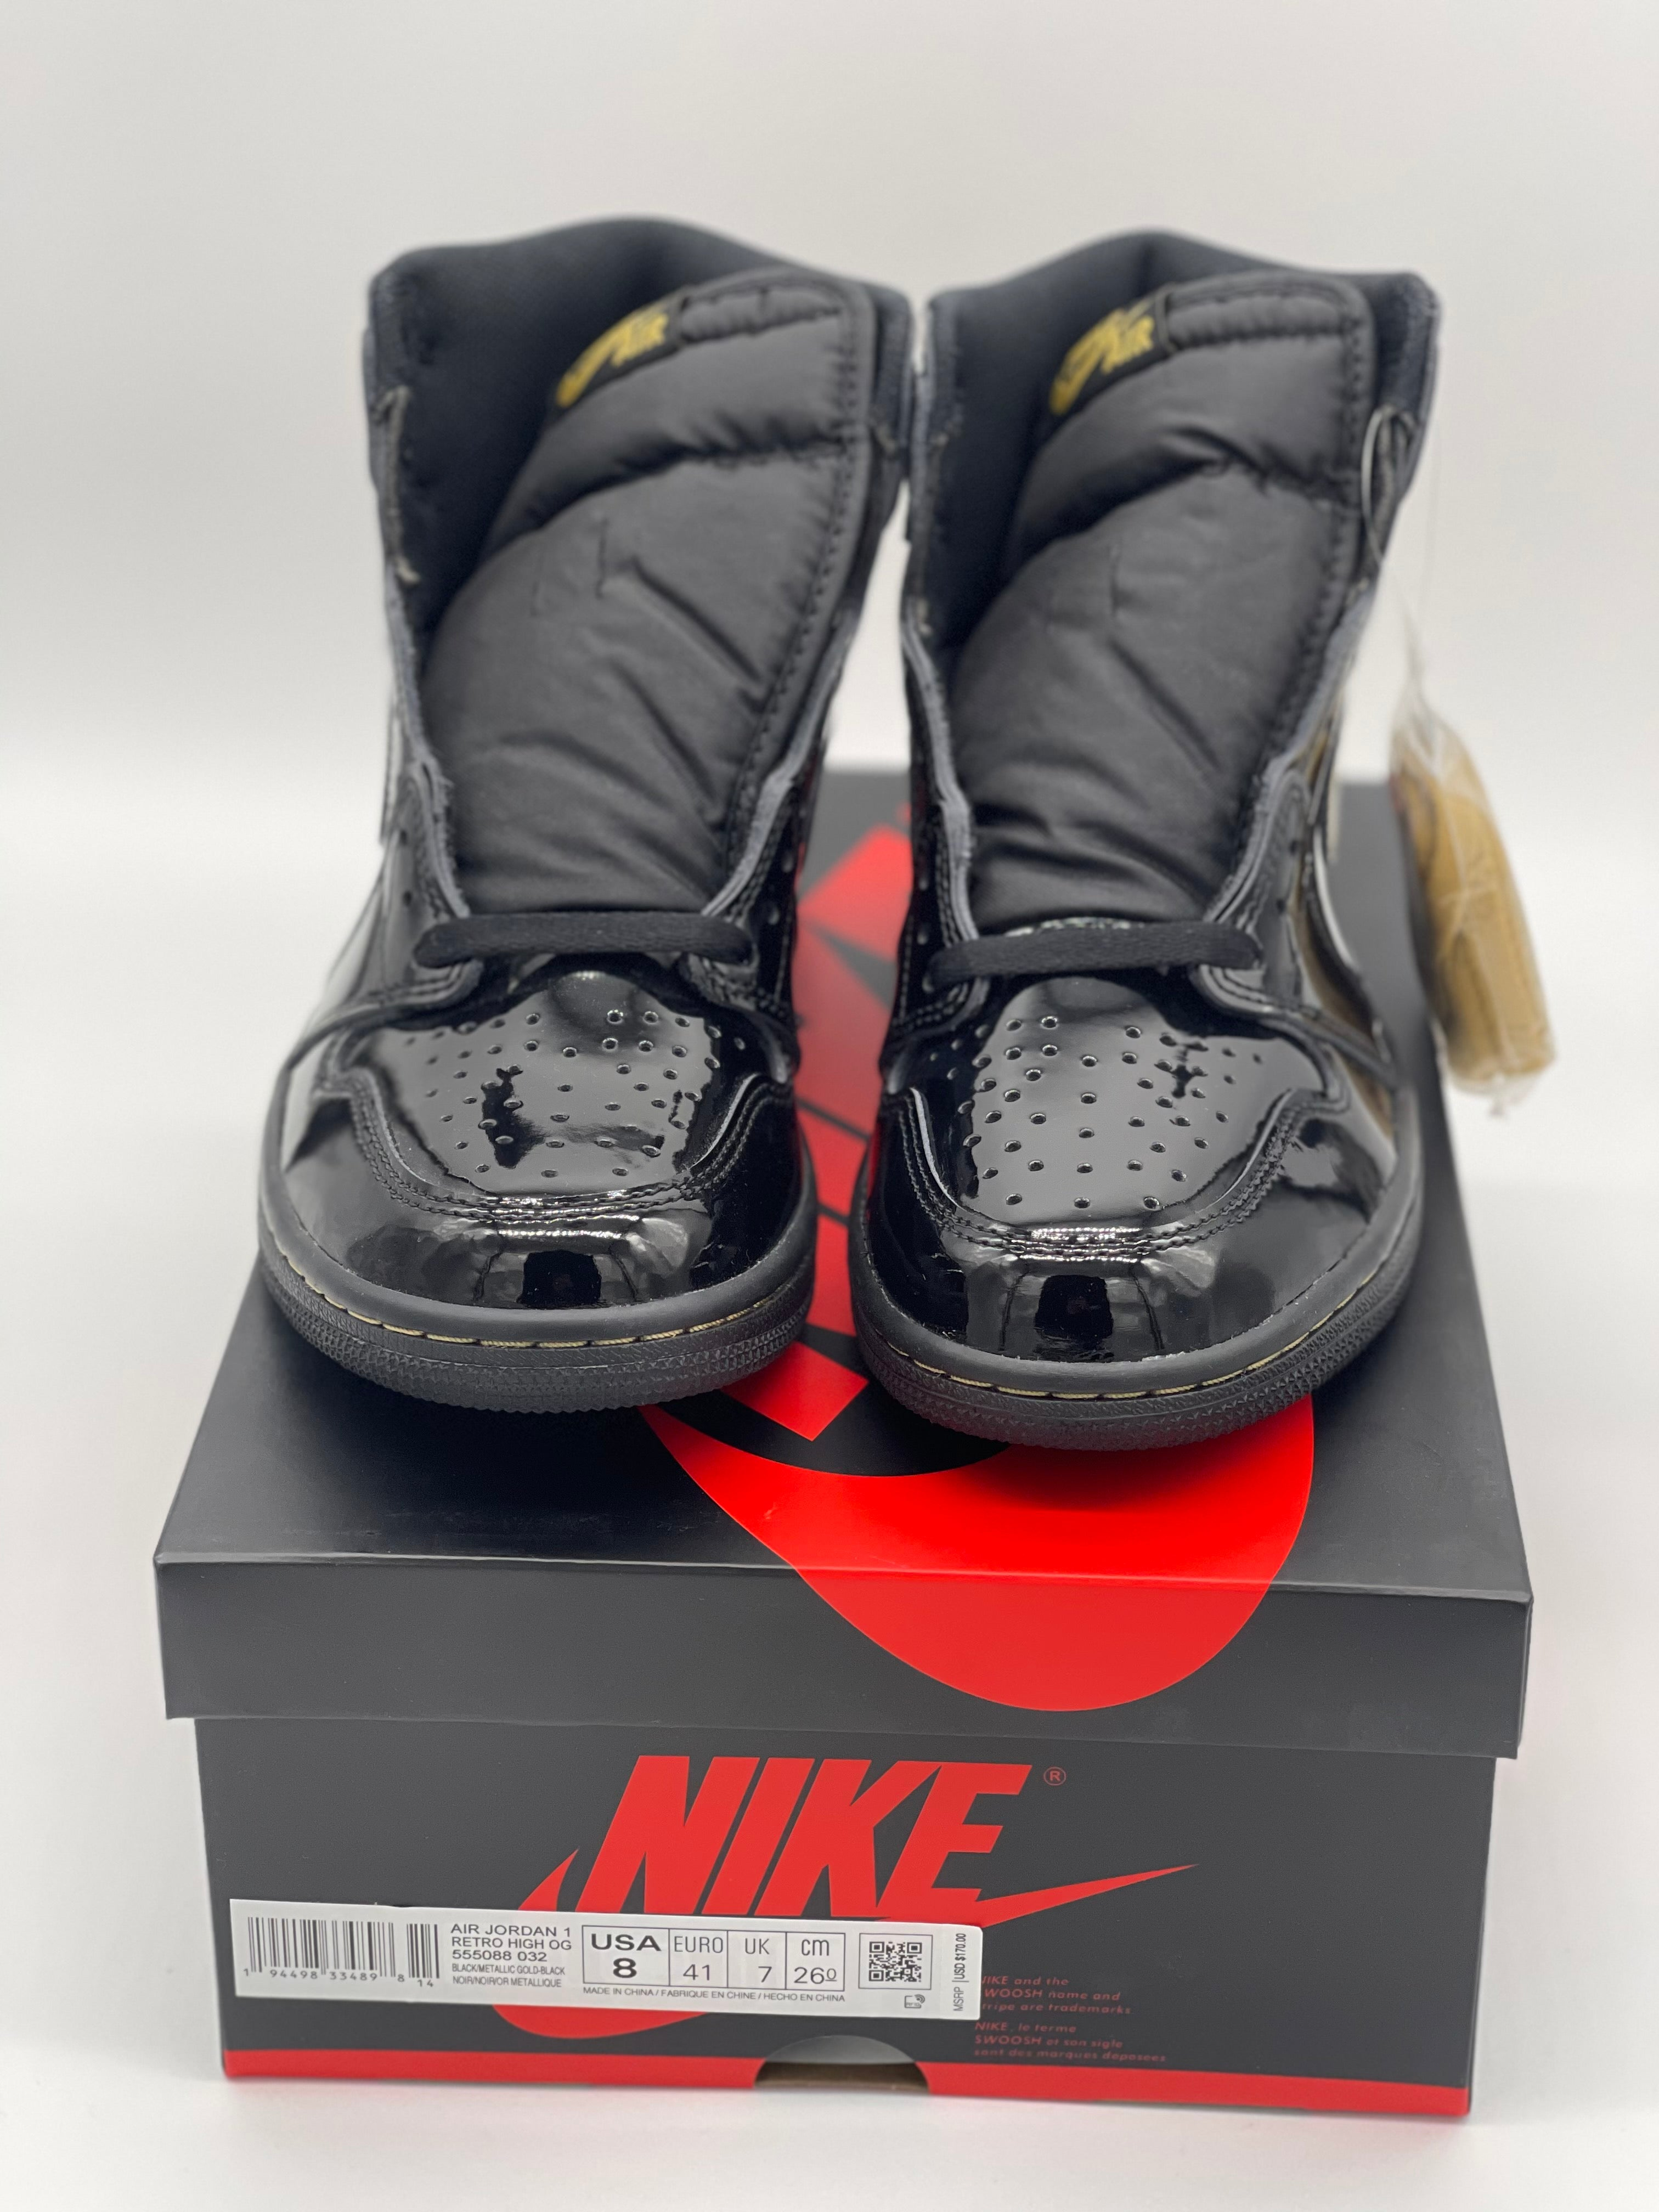 Retro 1 'Black Metallic Gold' Size 8 DS